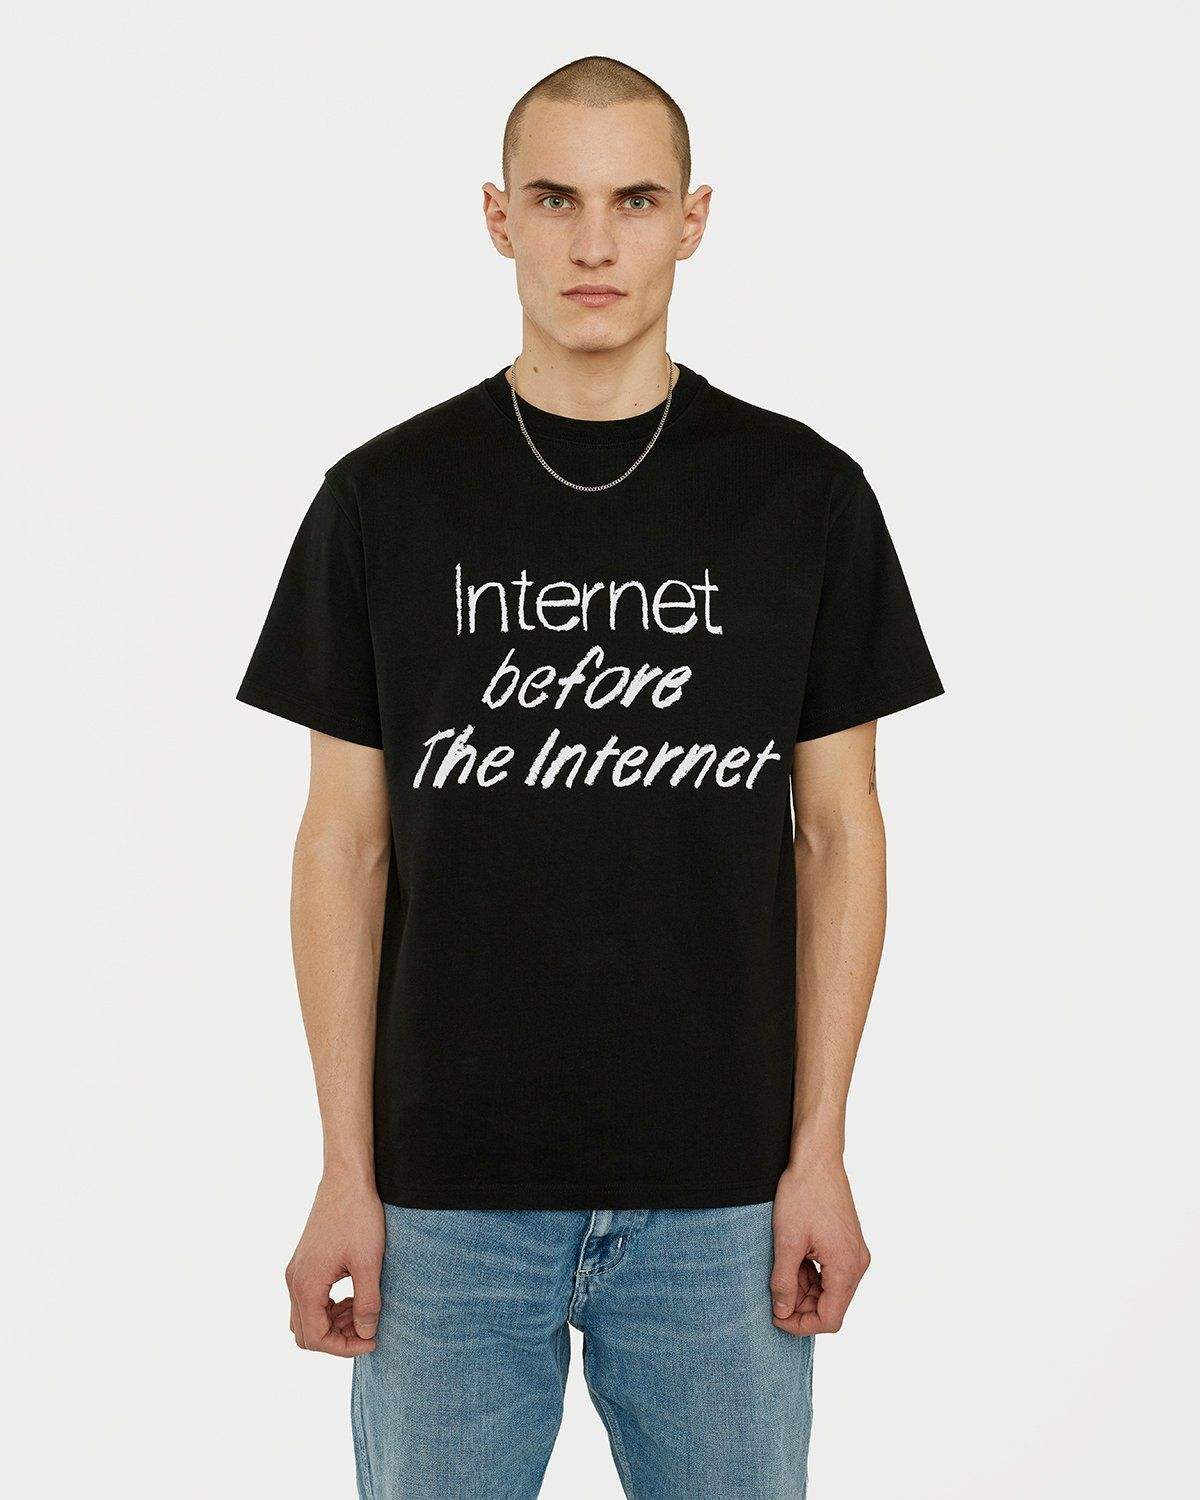 Colette Mon Amour — The Internet Before The Internet T-Shirt Black - Image 2